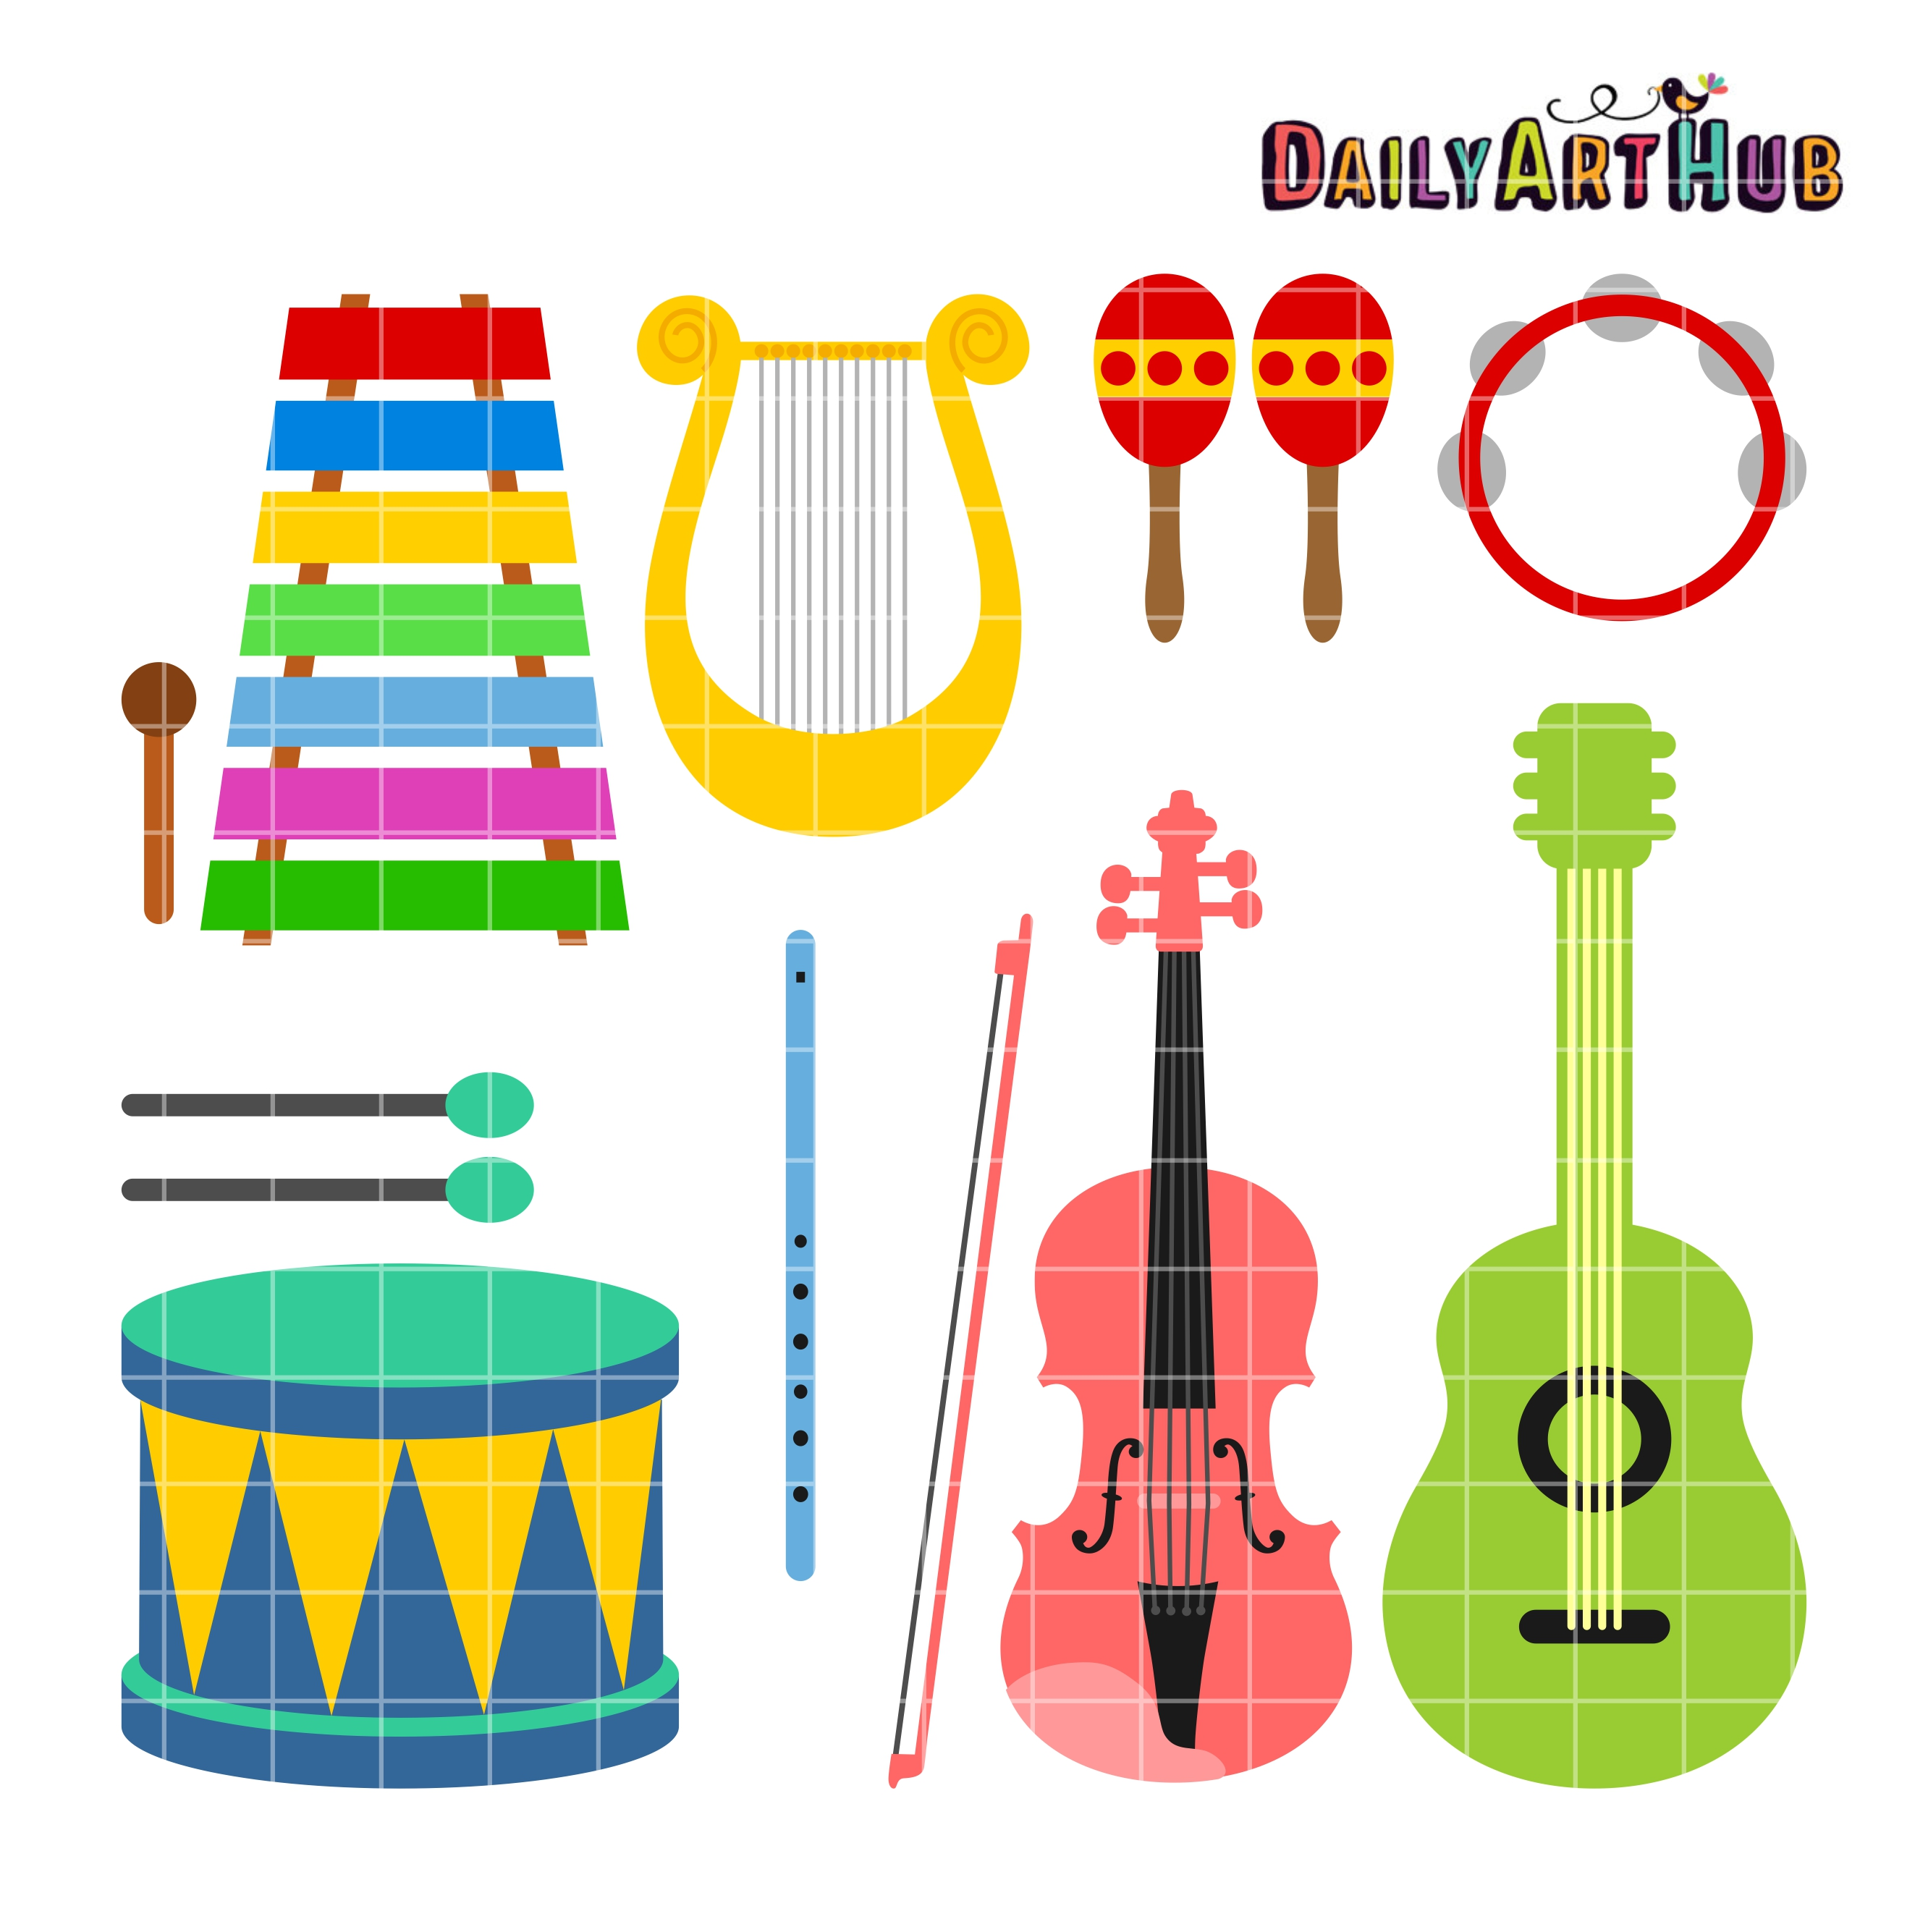 Musical instruments clipart images png royalty free library Musical Instruments Clip Art Set png royalty free library